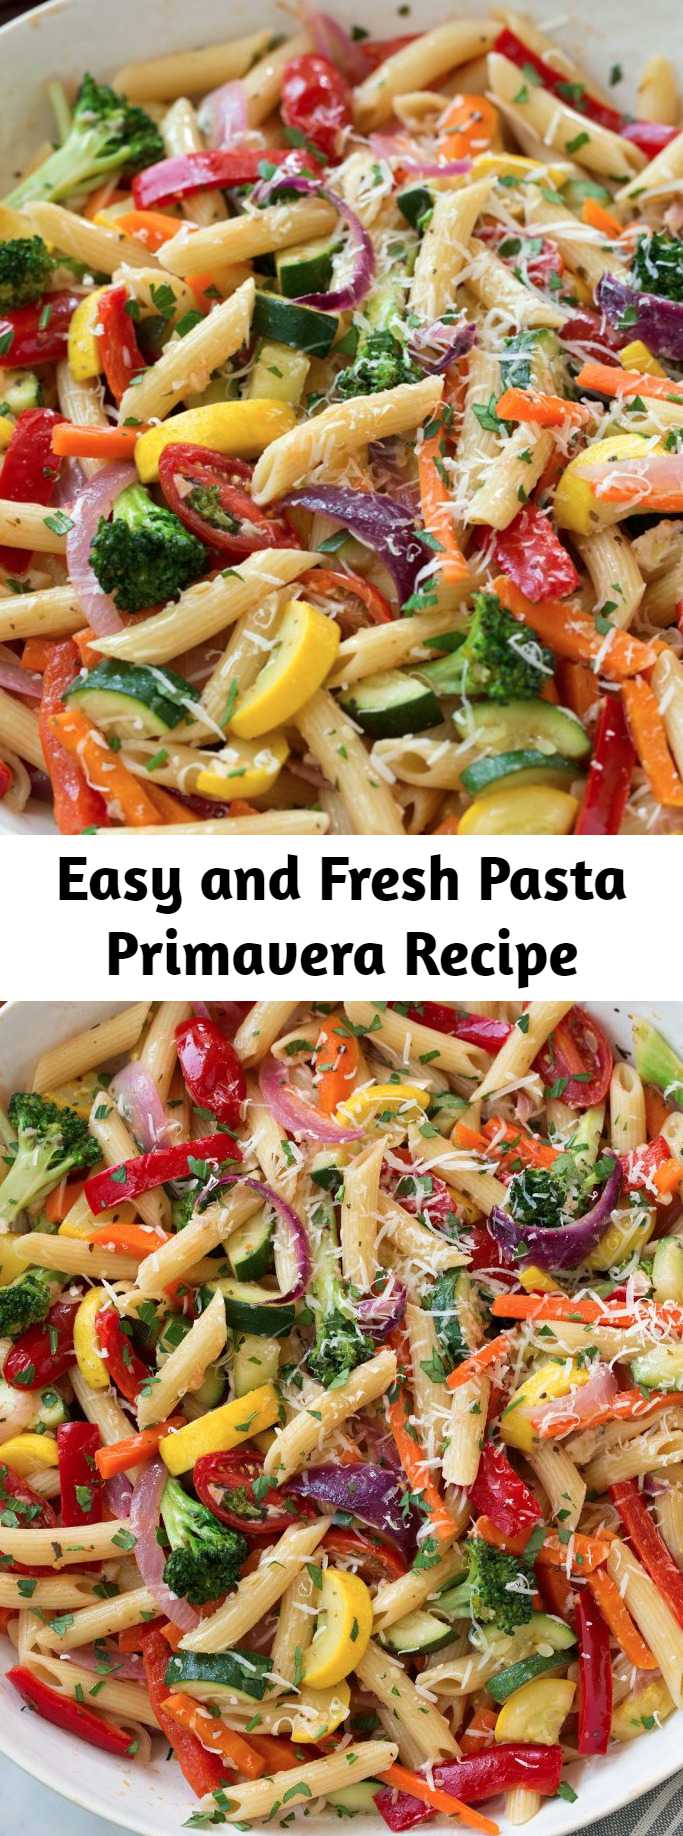 Easy and Fresh Pasta Primavera Recipe - This hearty, veggie packed pasta dish isn't just for spring and summer, this is a packed pasta dish that's perfect year round! It has such a satisfying flavor and it's versatile recipe so you can add different kinds of vegetables you might already have on hand. #pasta #primavera #dinner #recipe